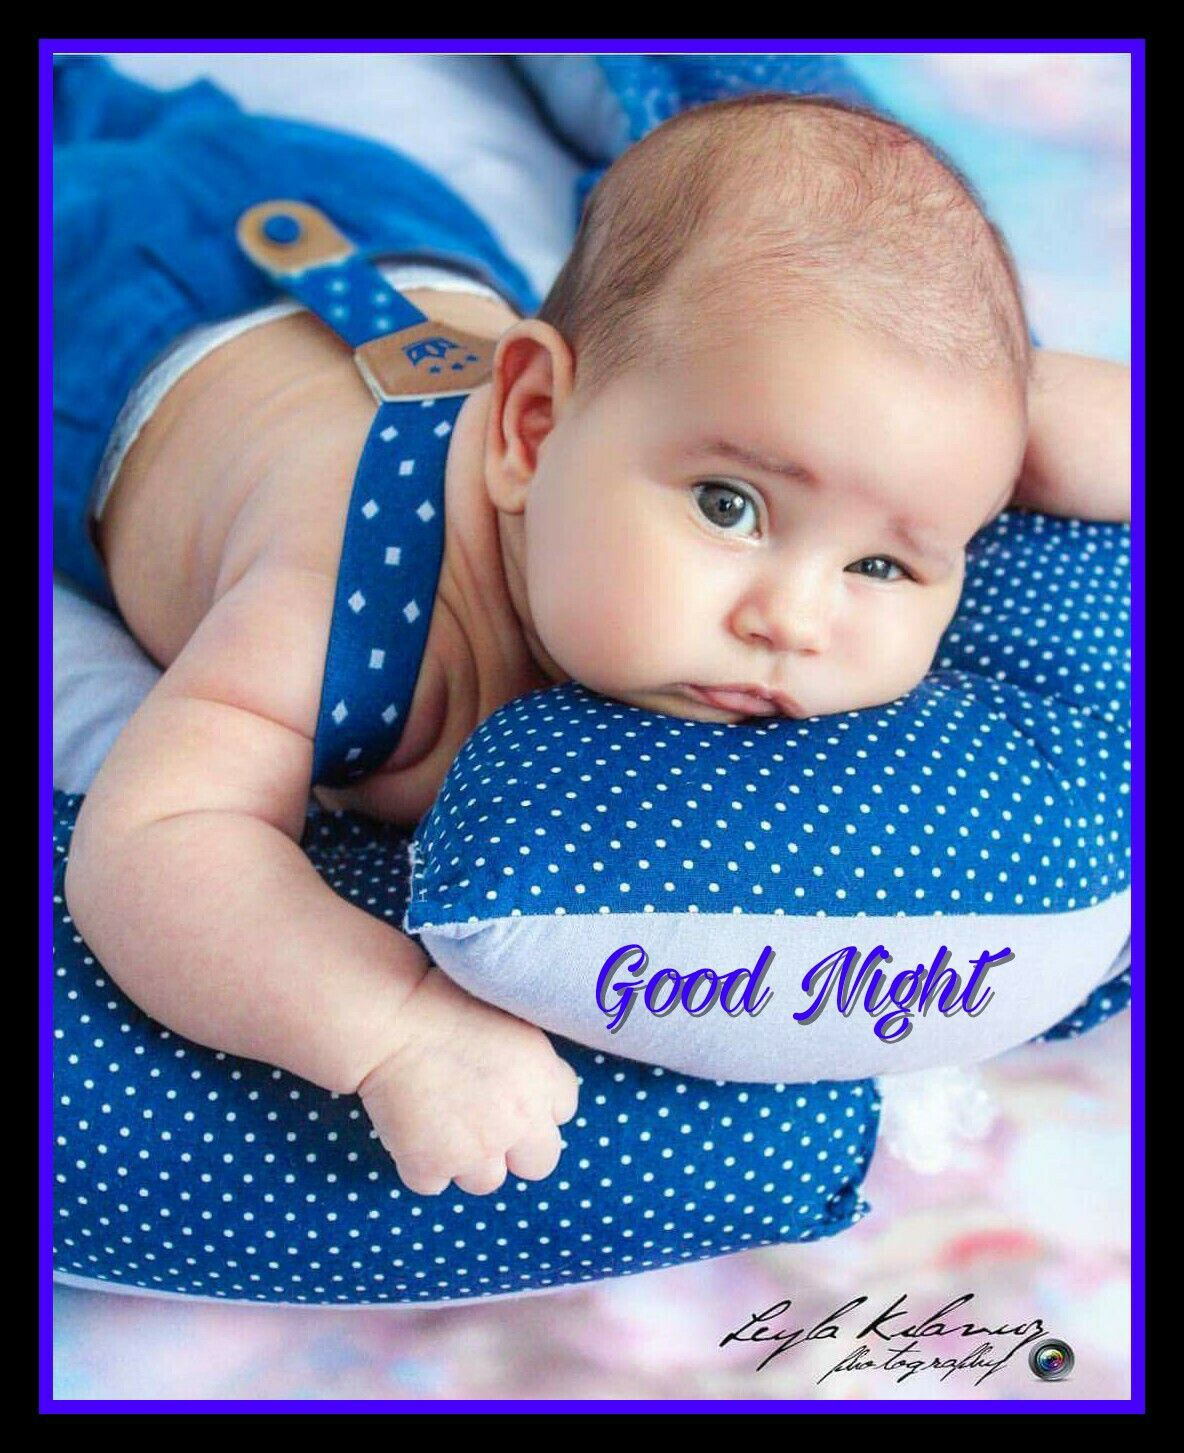 Good Night Sister Sweet Dreams Good Night Good Night Good Night